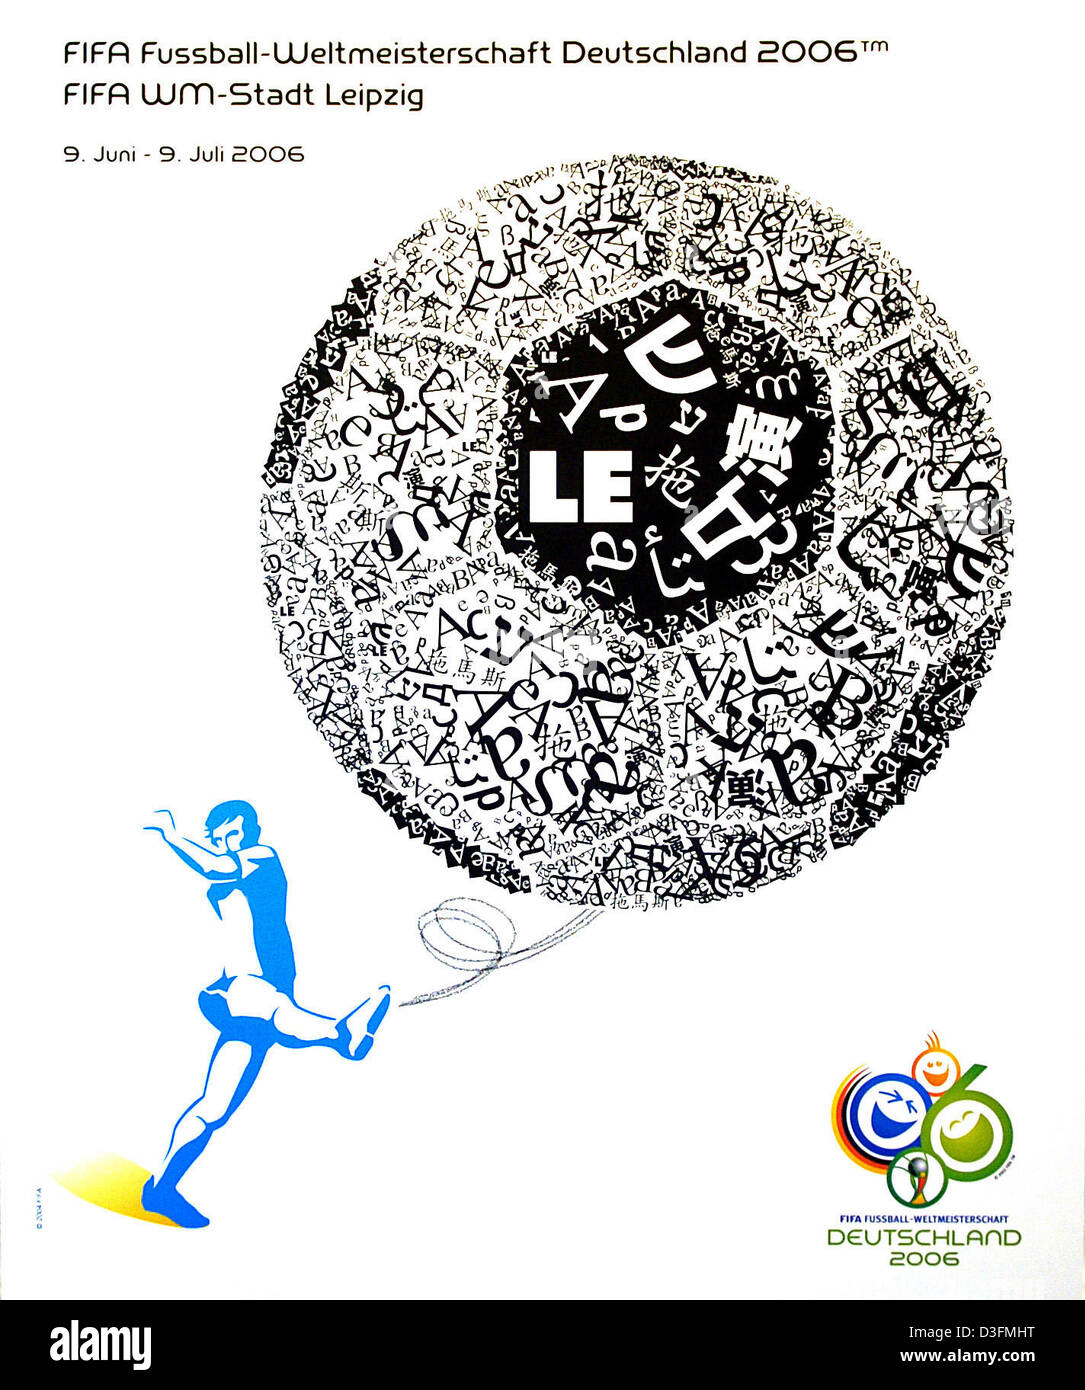 World Cup 2006 Poster Stock Photos & World Cup 2006 Poster ...